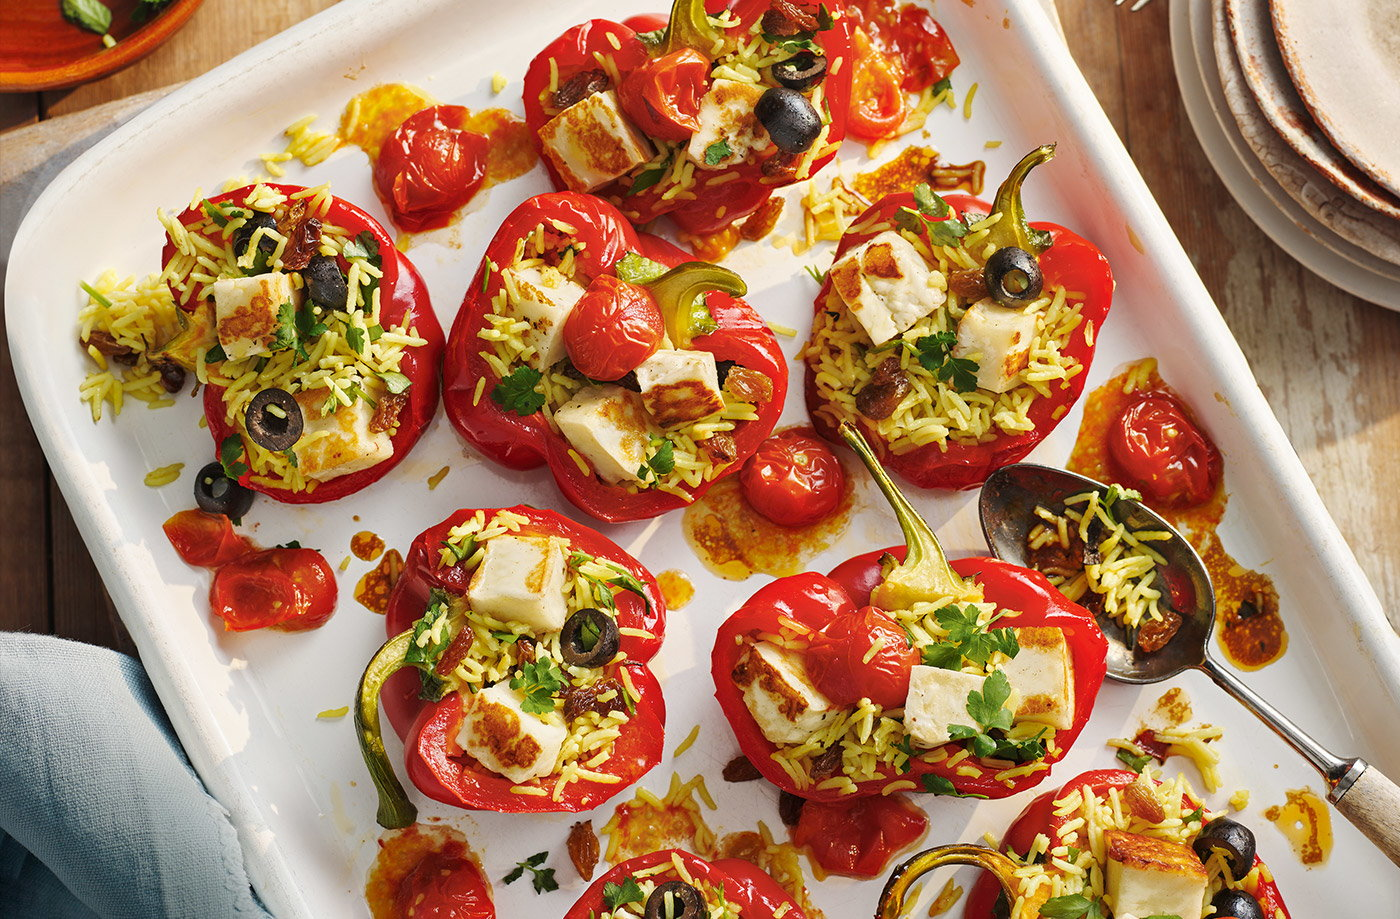 Halloumi stuffed peppers recipe